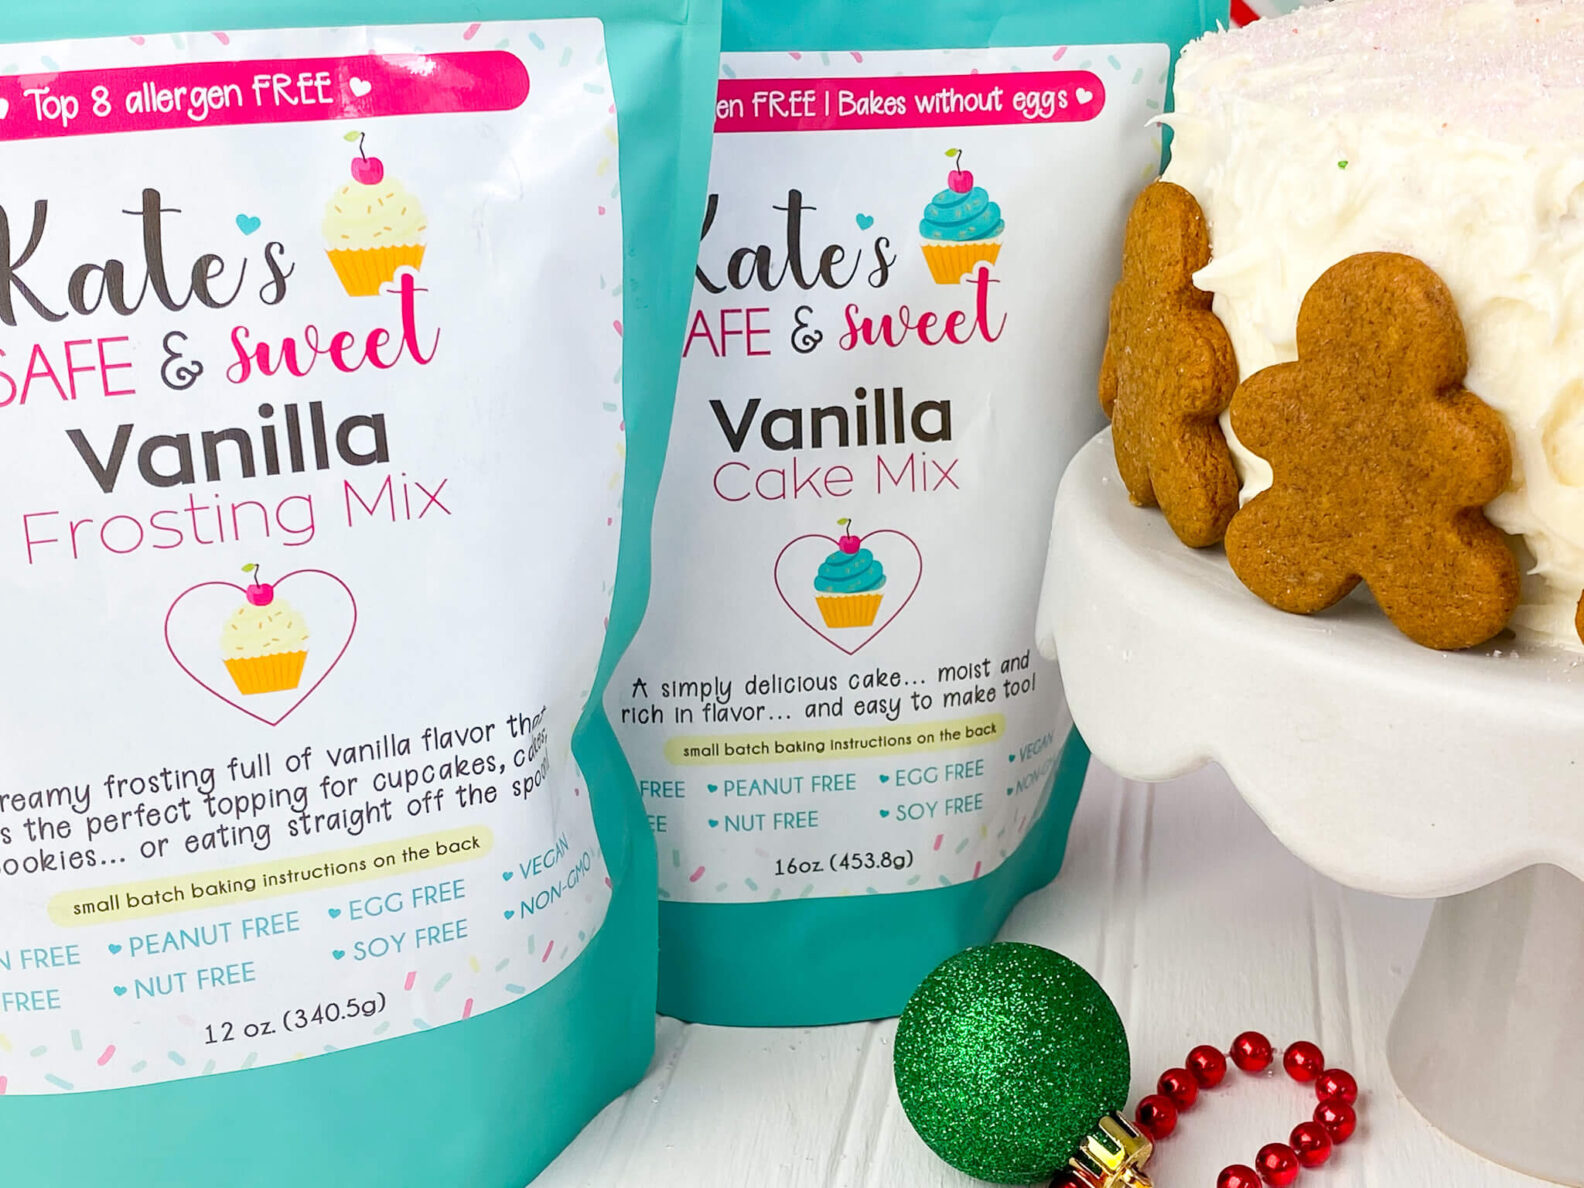 Kate's Safe and Sweet - Gingerbread Cake Mixes